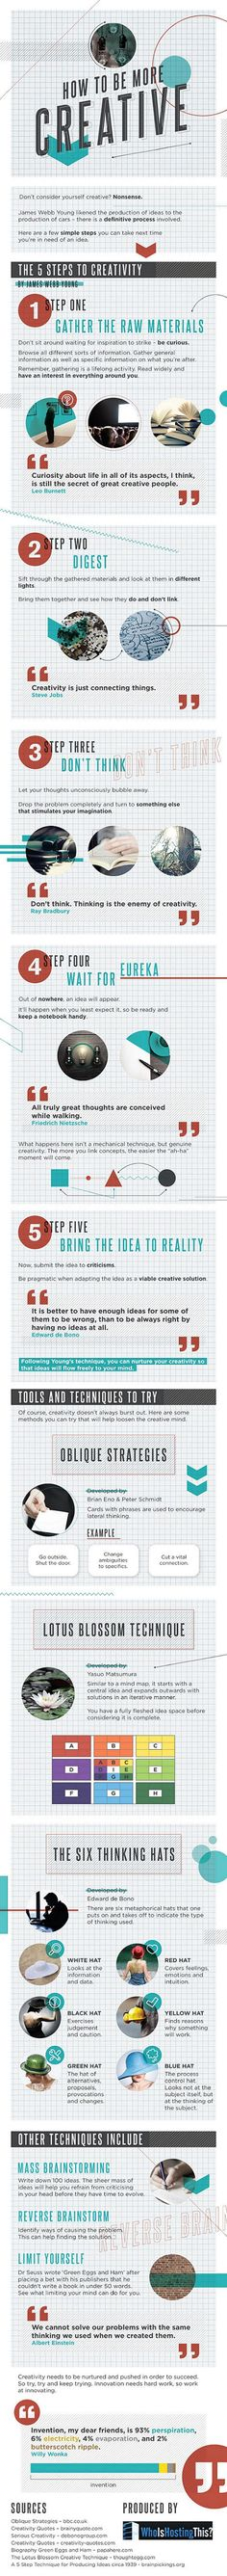 Boost Creativity : You don't have to be an artist to be creative. We were all born to be creative. This infographic tells us more.  > http://infographicsmania.com/boost-creativity/?utm_source=Pinterest&utm_medium=ZAKKAS&utm_campaign=SNAP